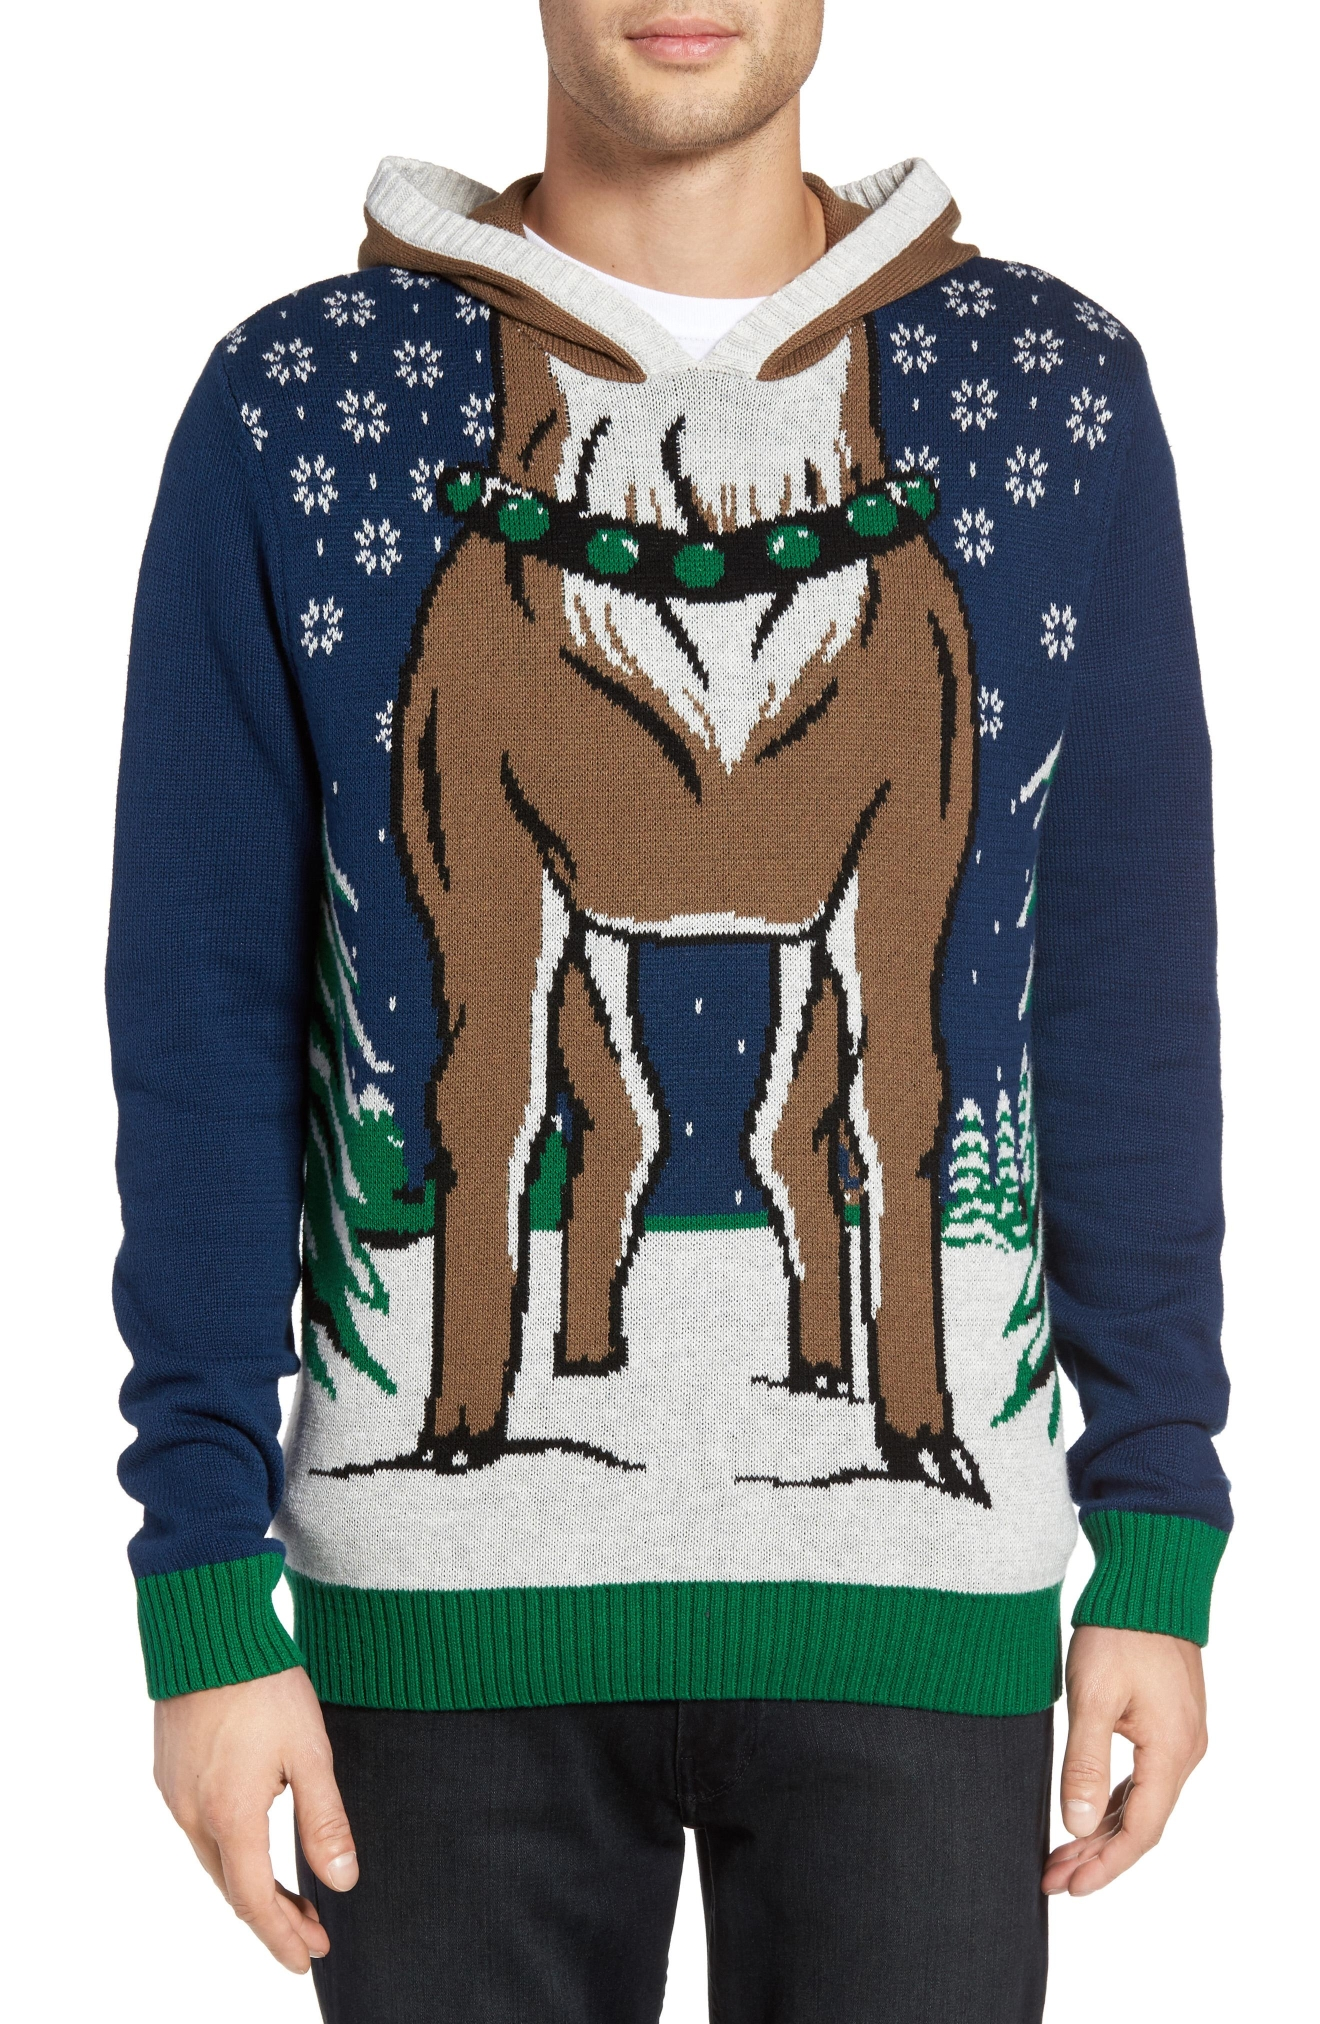 The Rail Reindeer Intarsia Hooded Sweater, $49.50 (Photo: Nordstrom)